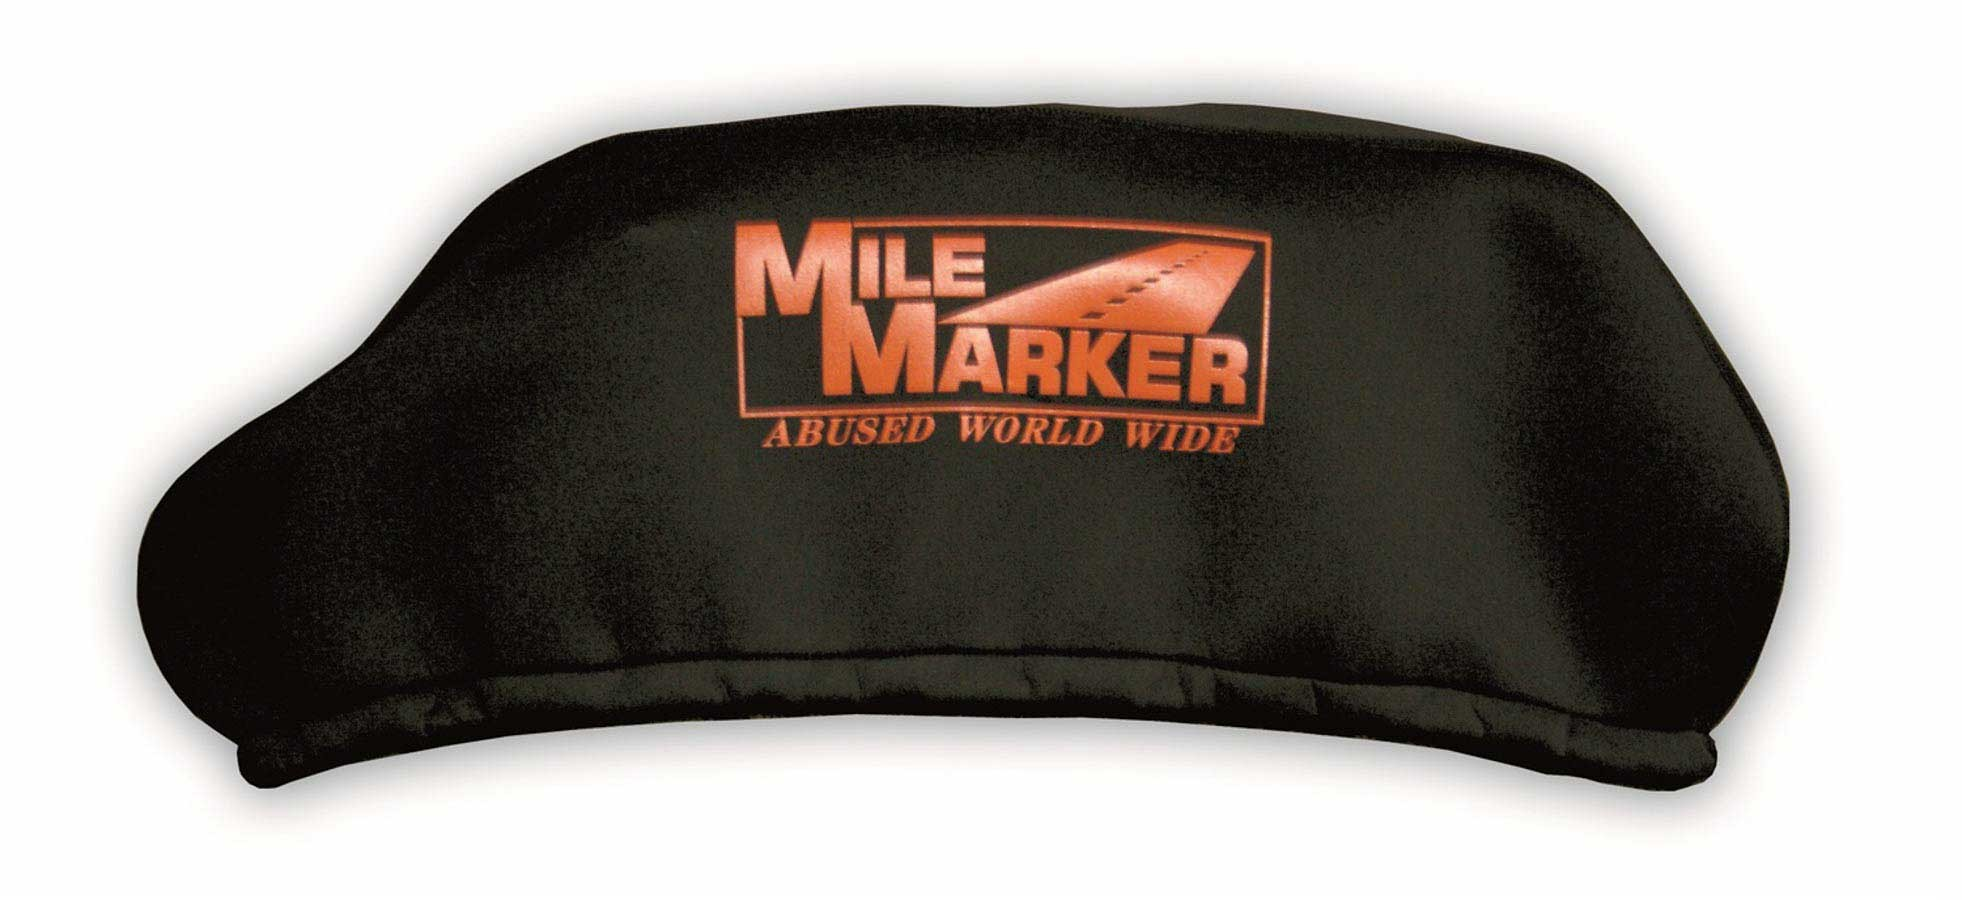 Mile Marker Winch Cover Fits 8000 to 12000lb Winches